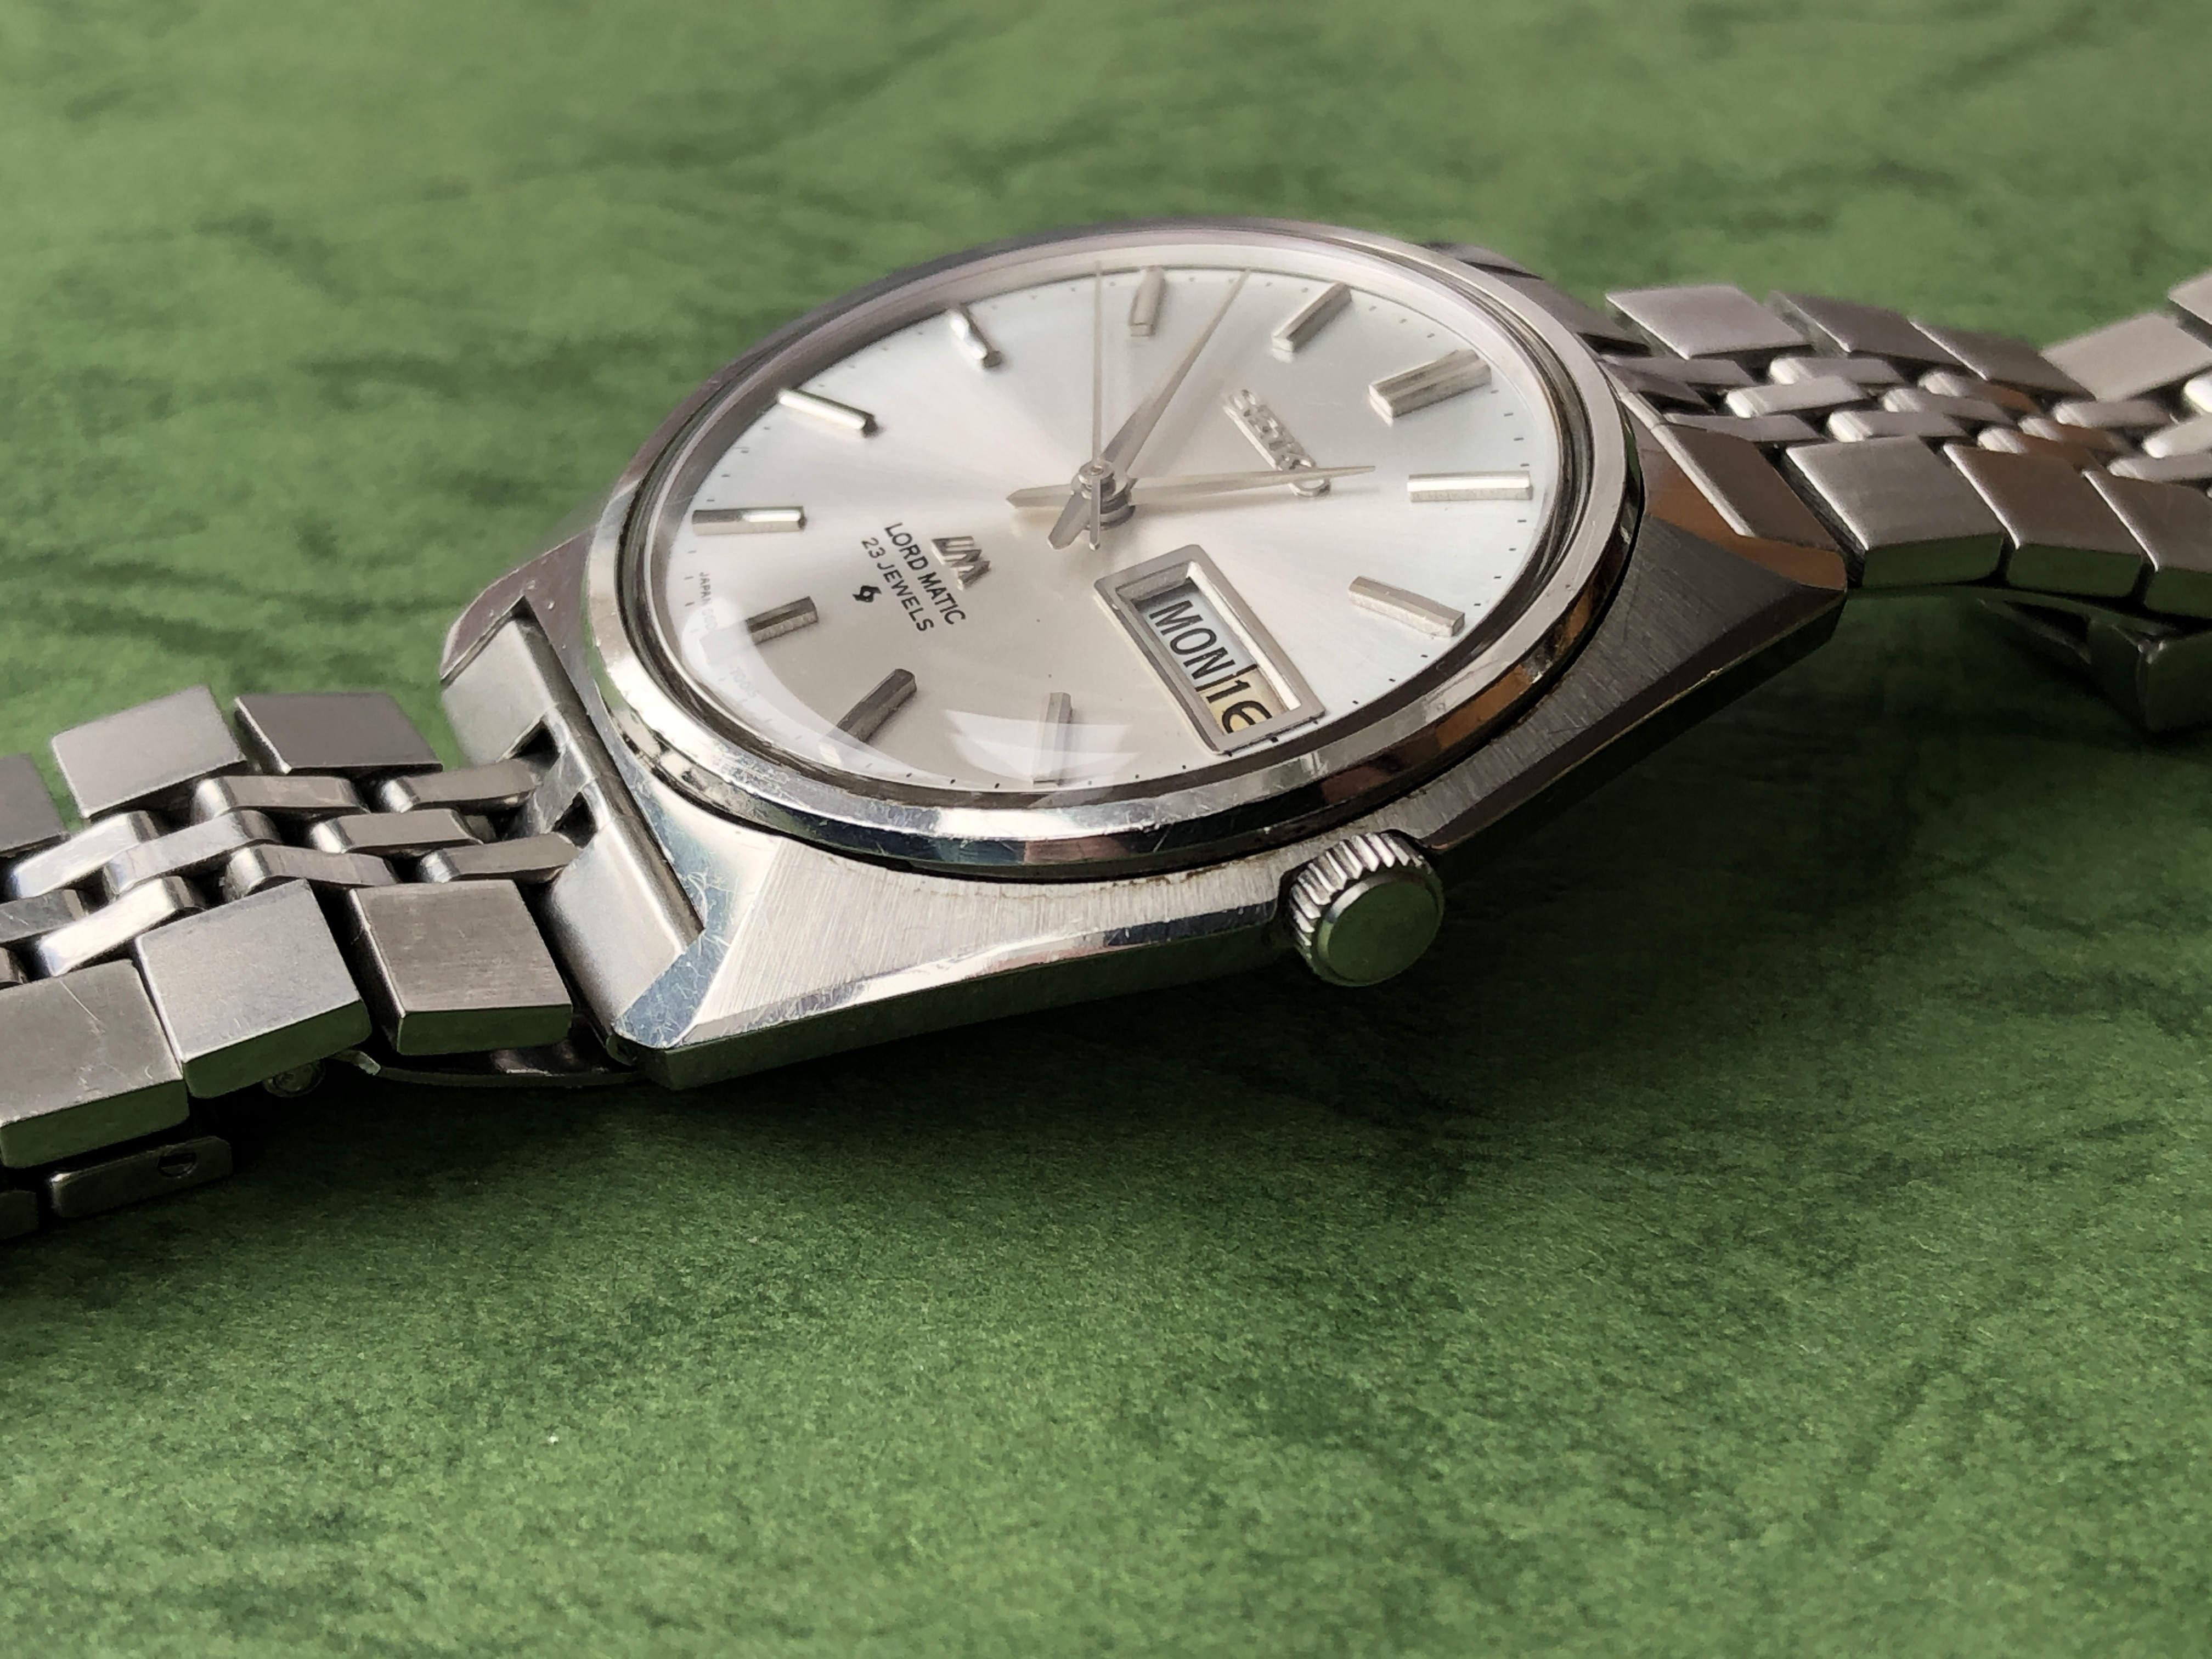 Seiko Lord-Matic 5606-7000 (Sold)